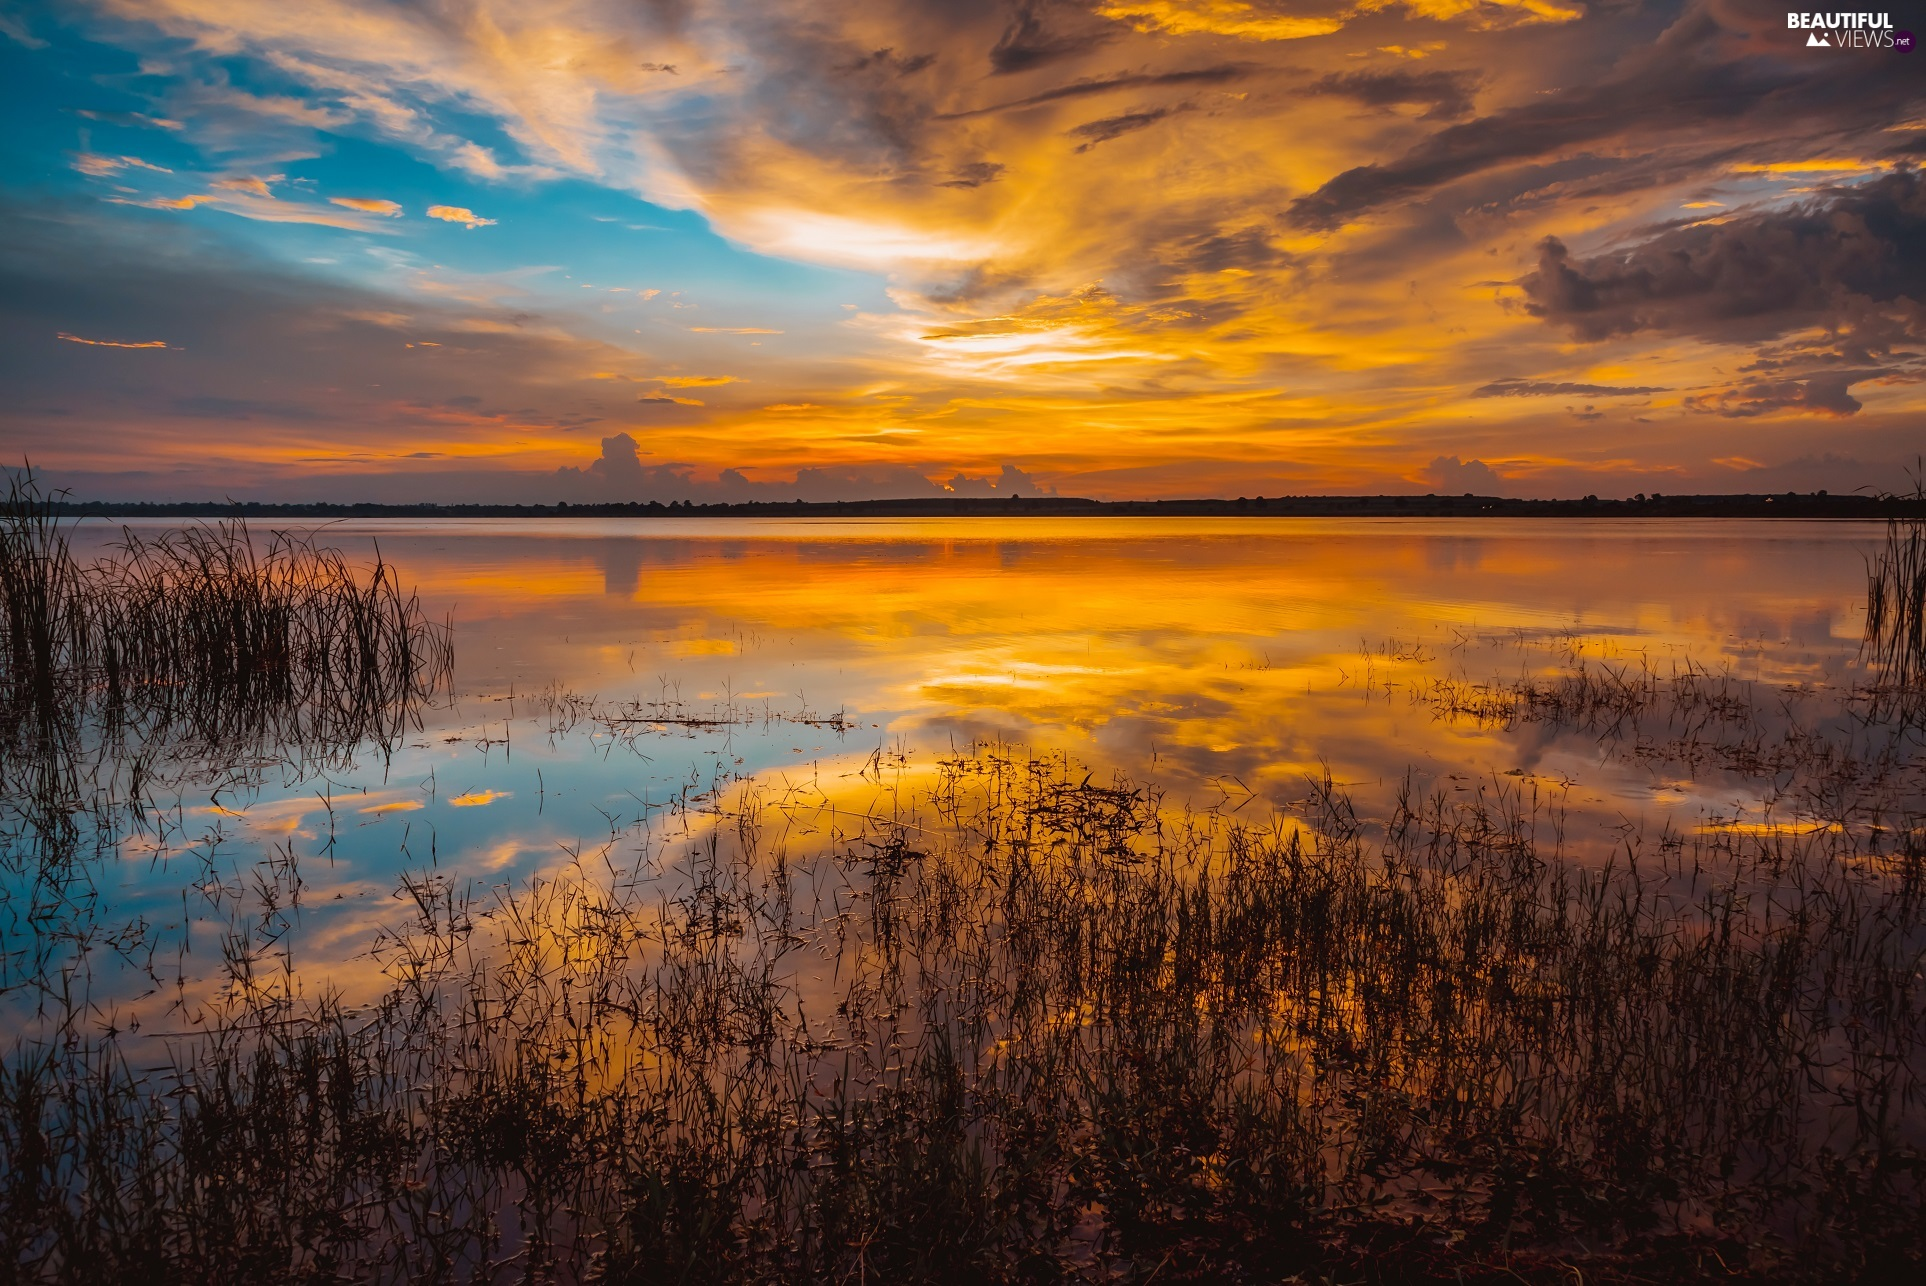 clouds, reflection, lake, rushes, Great Sunsets